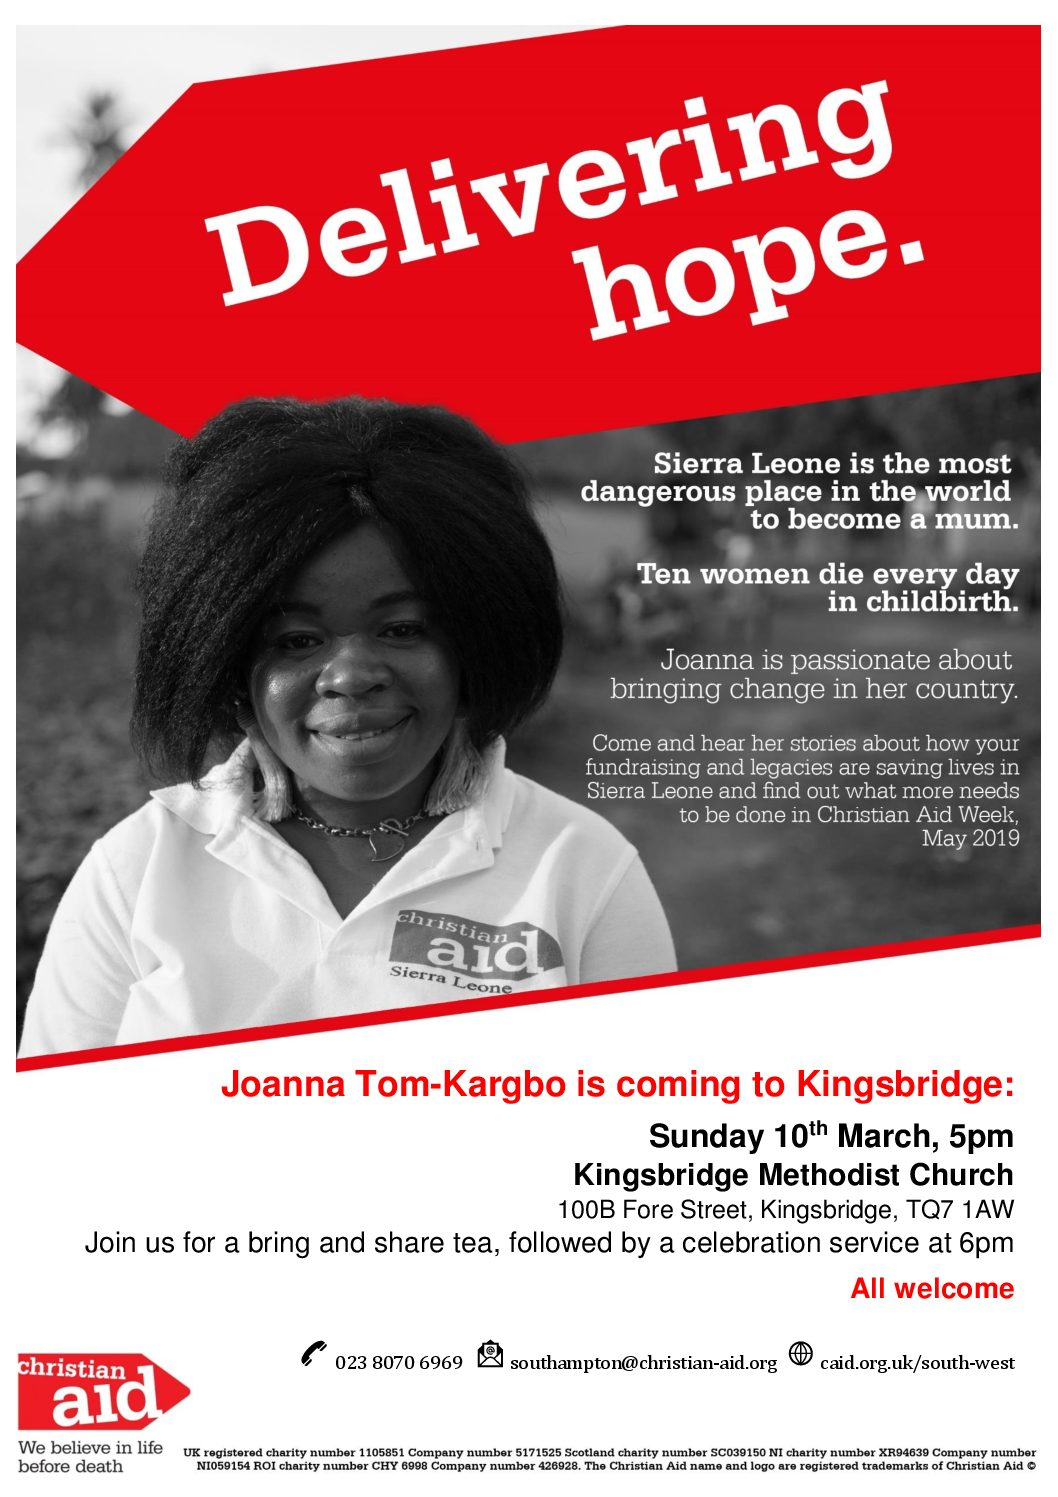 Christian Aid Bring and Share Tea followed by Service